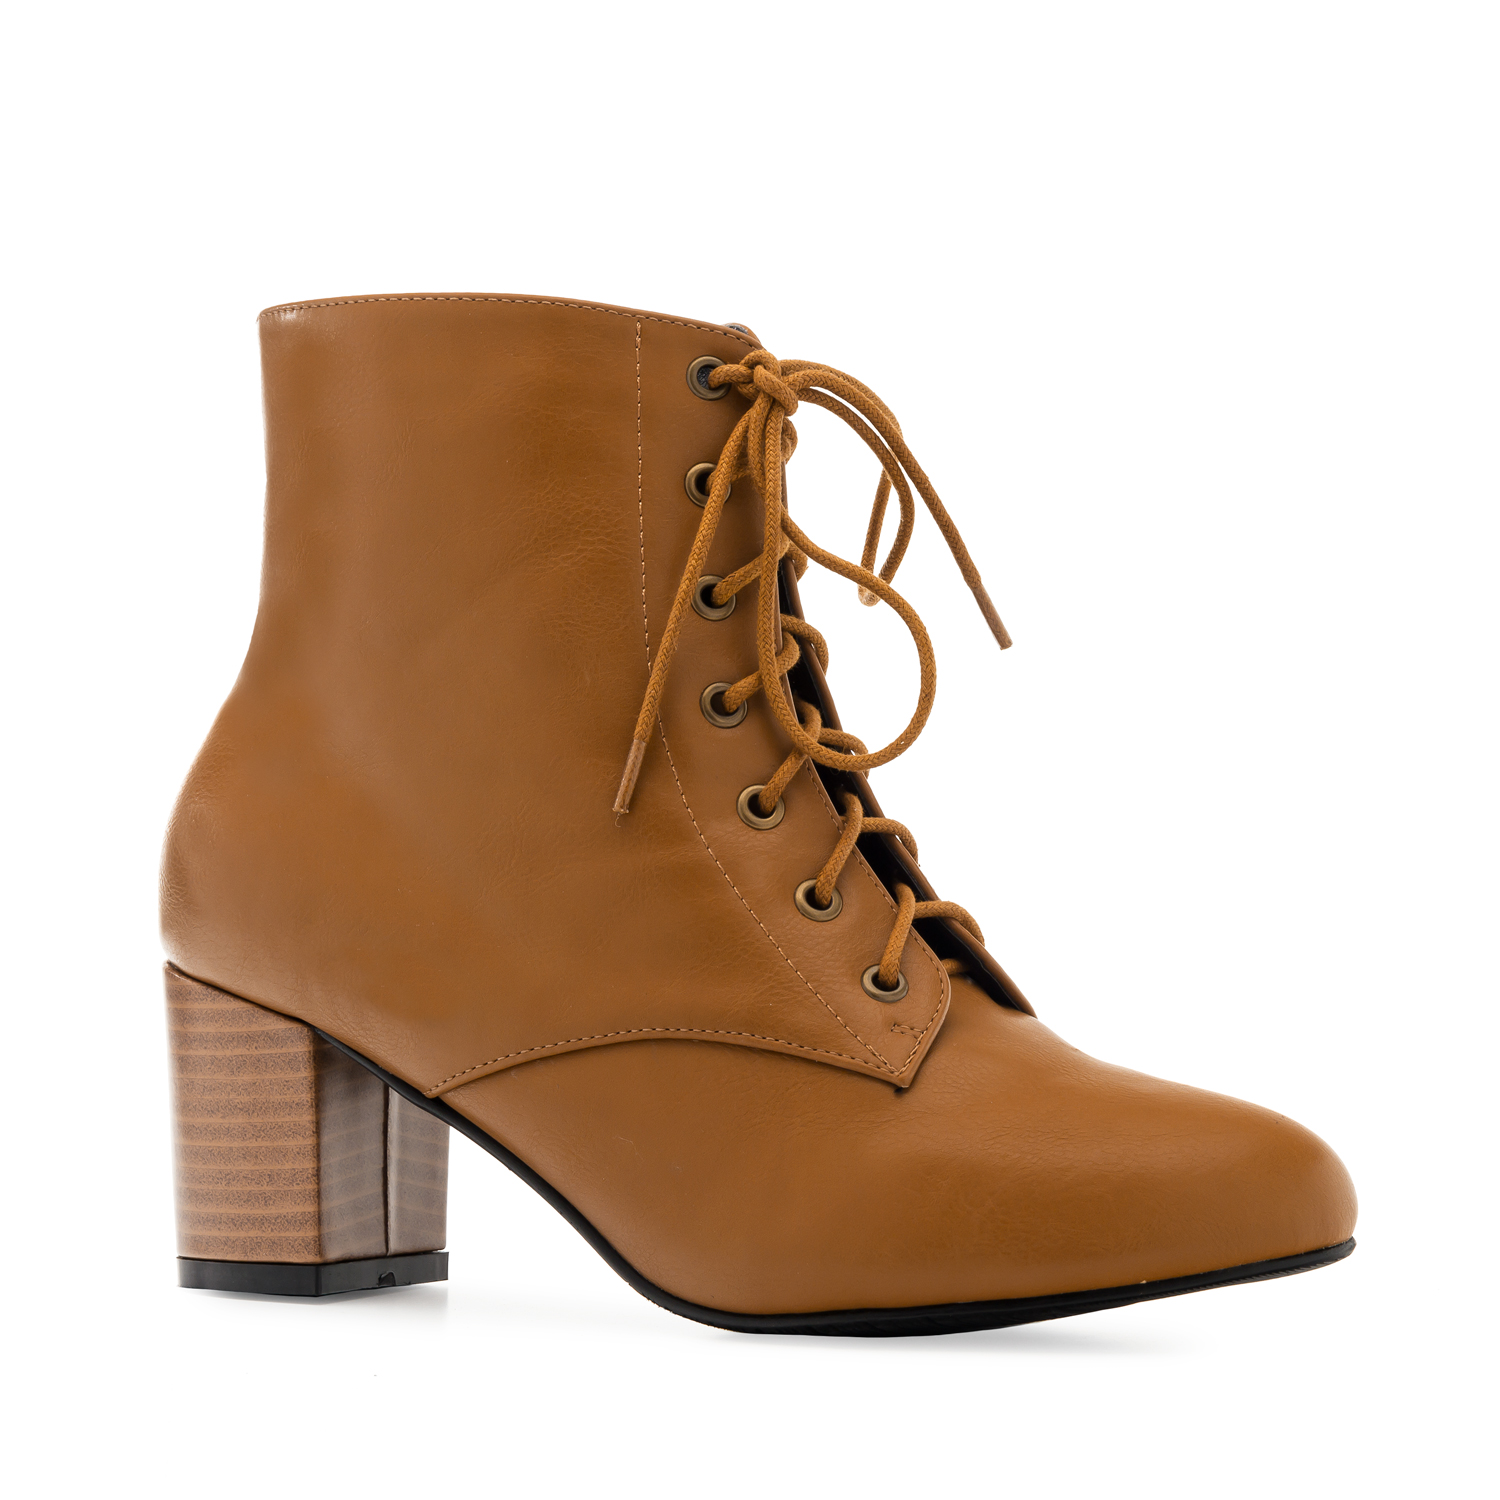 Bottines en Soft couleur Camel